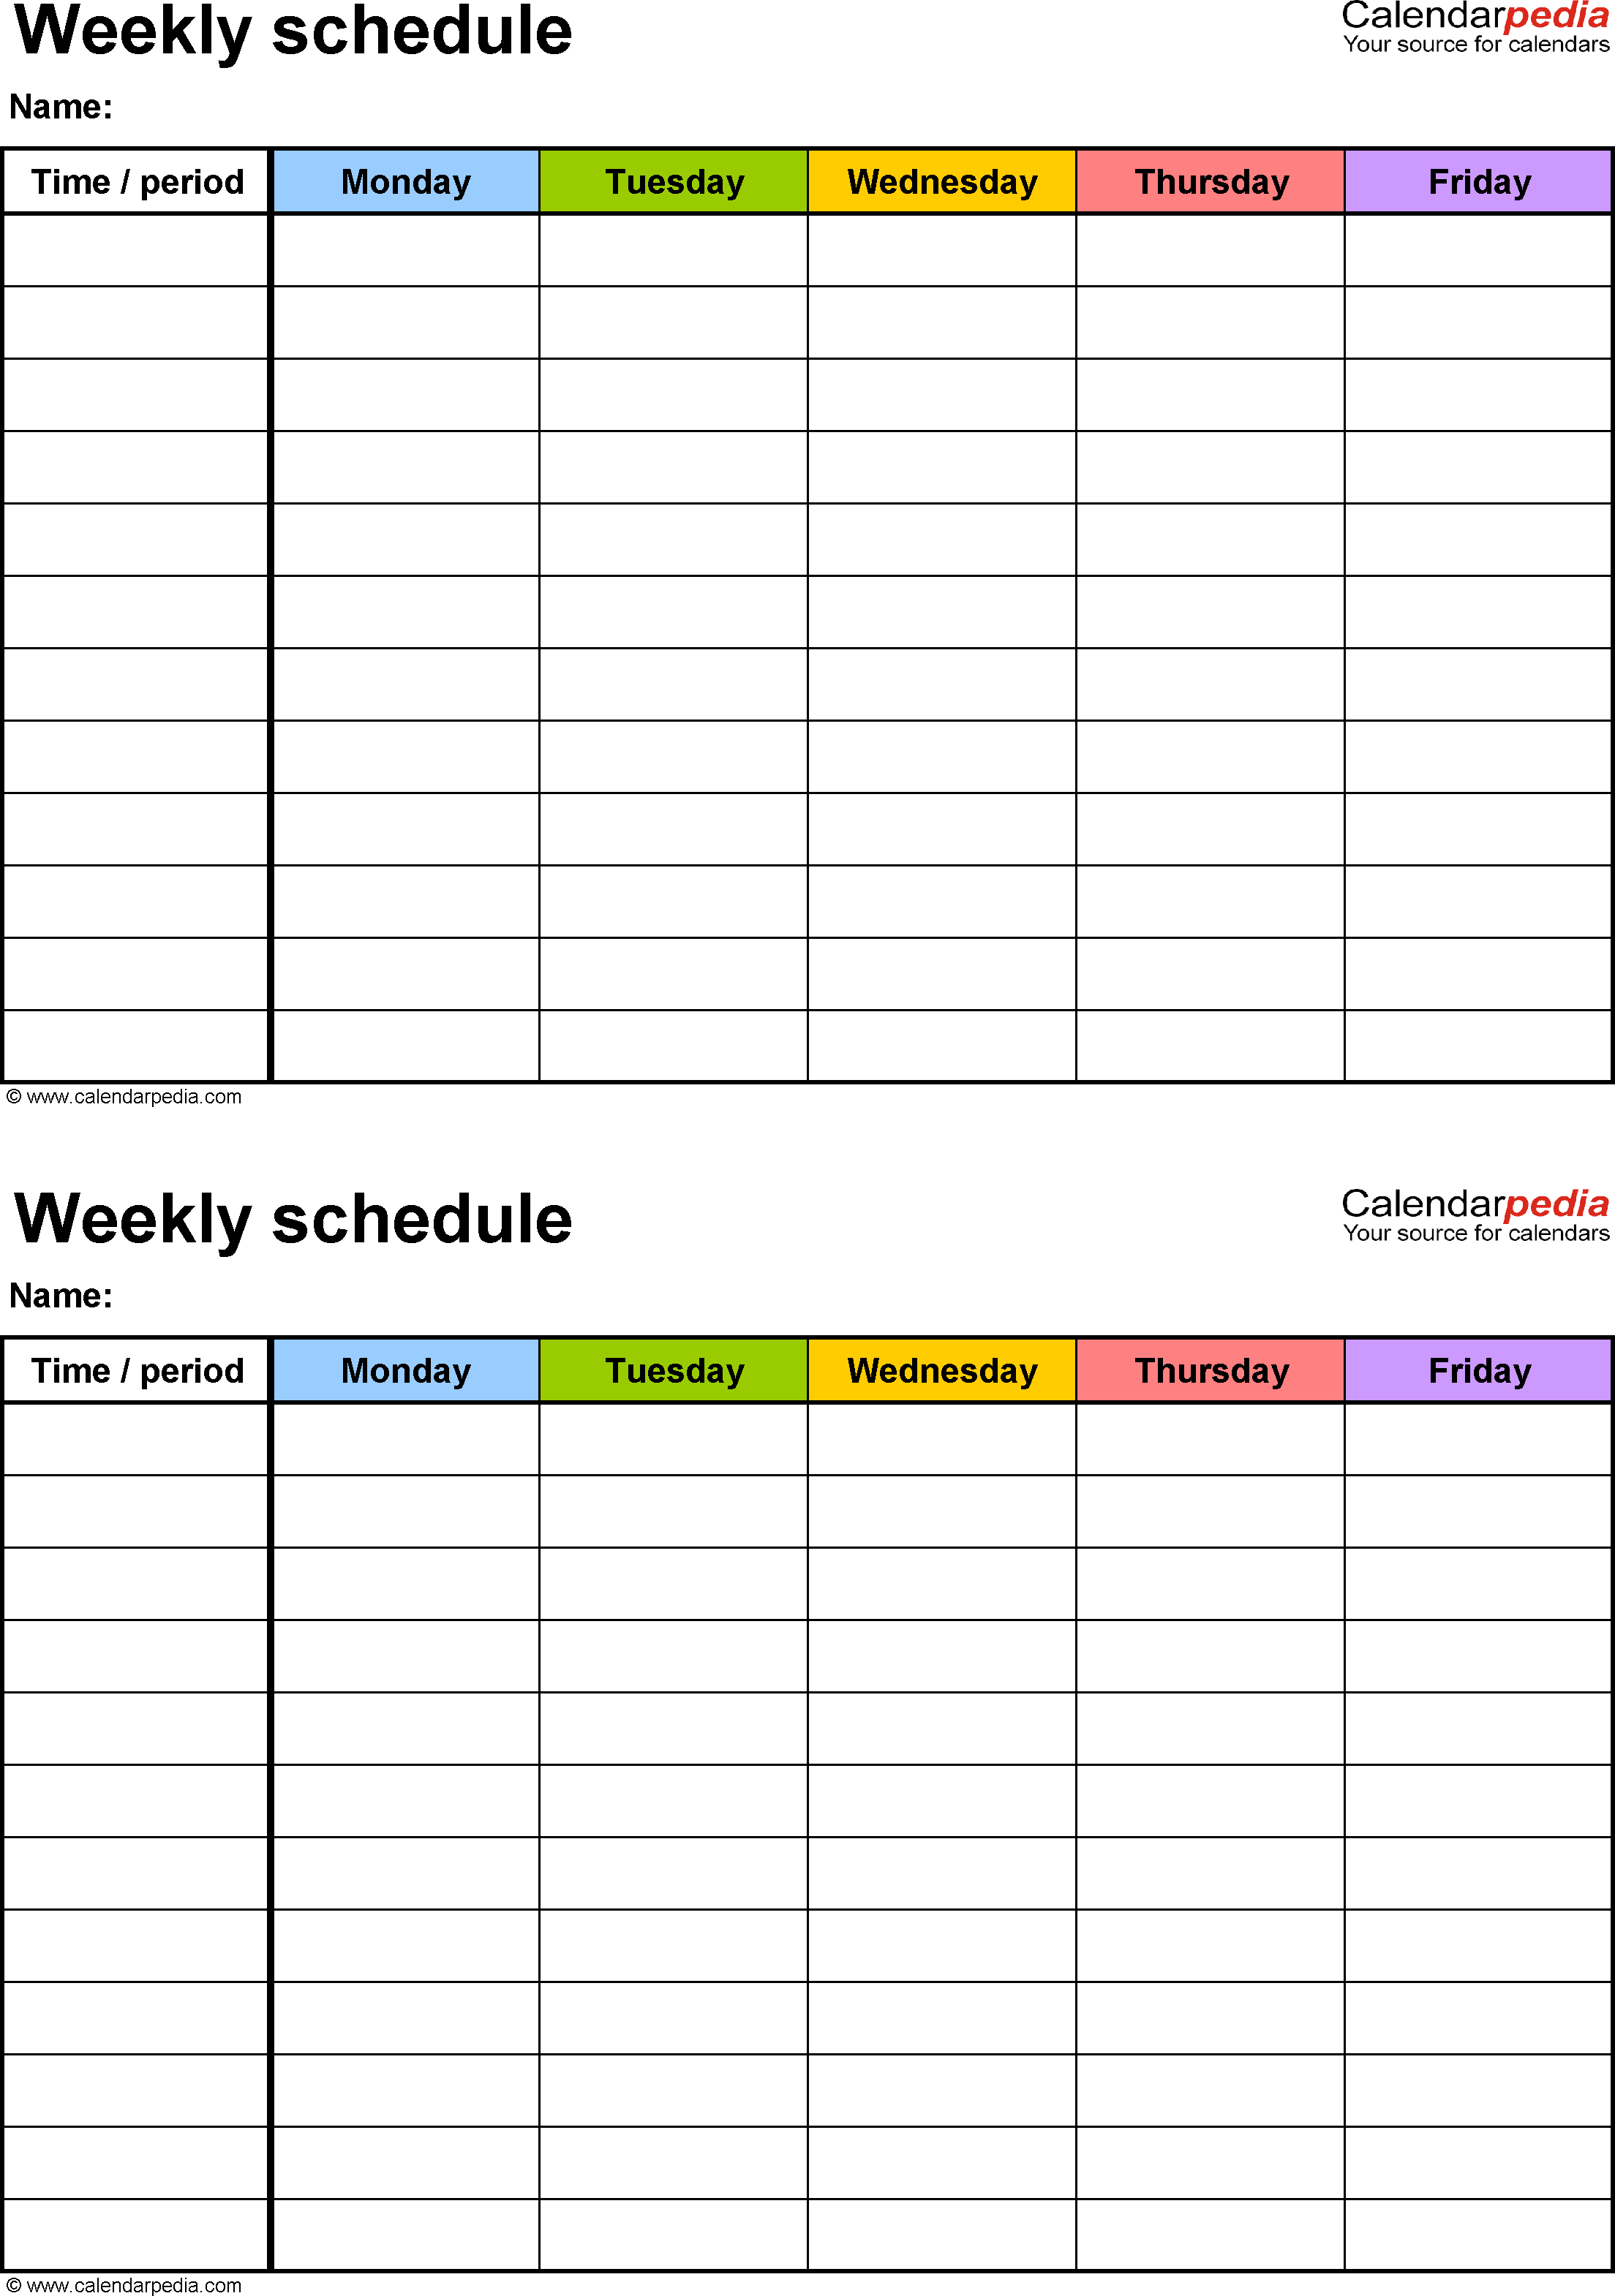 Weekly Schedule Template For Excel Version Schedules On One - Monday through friday schedule template